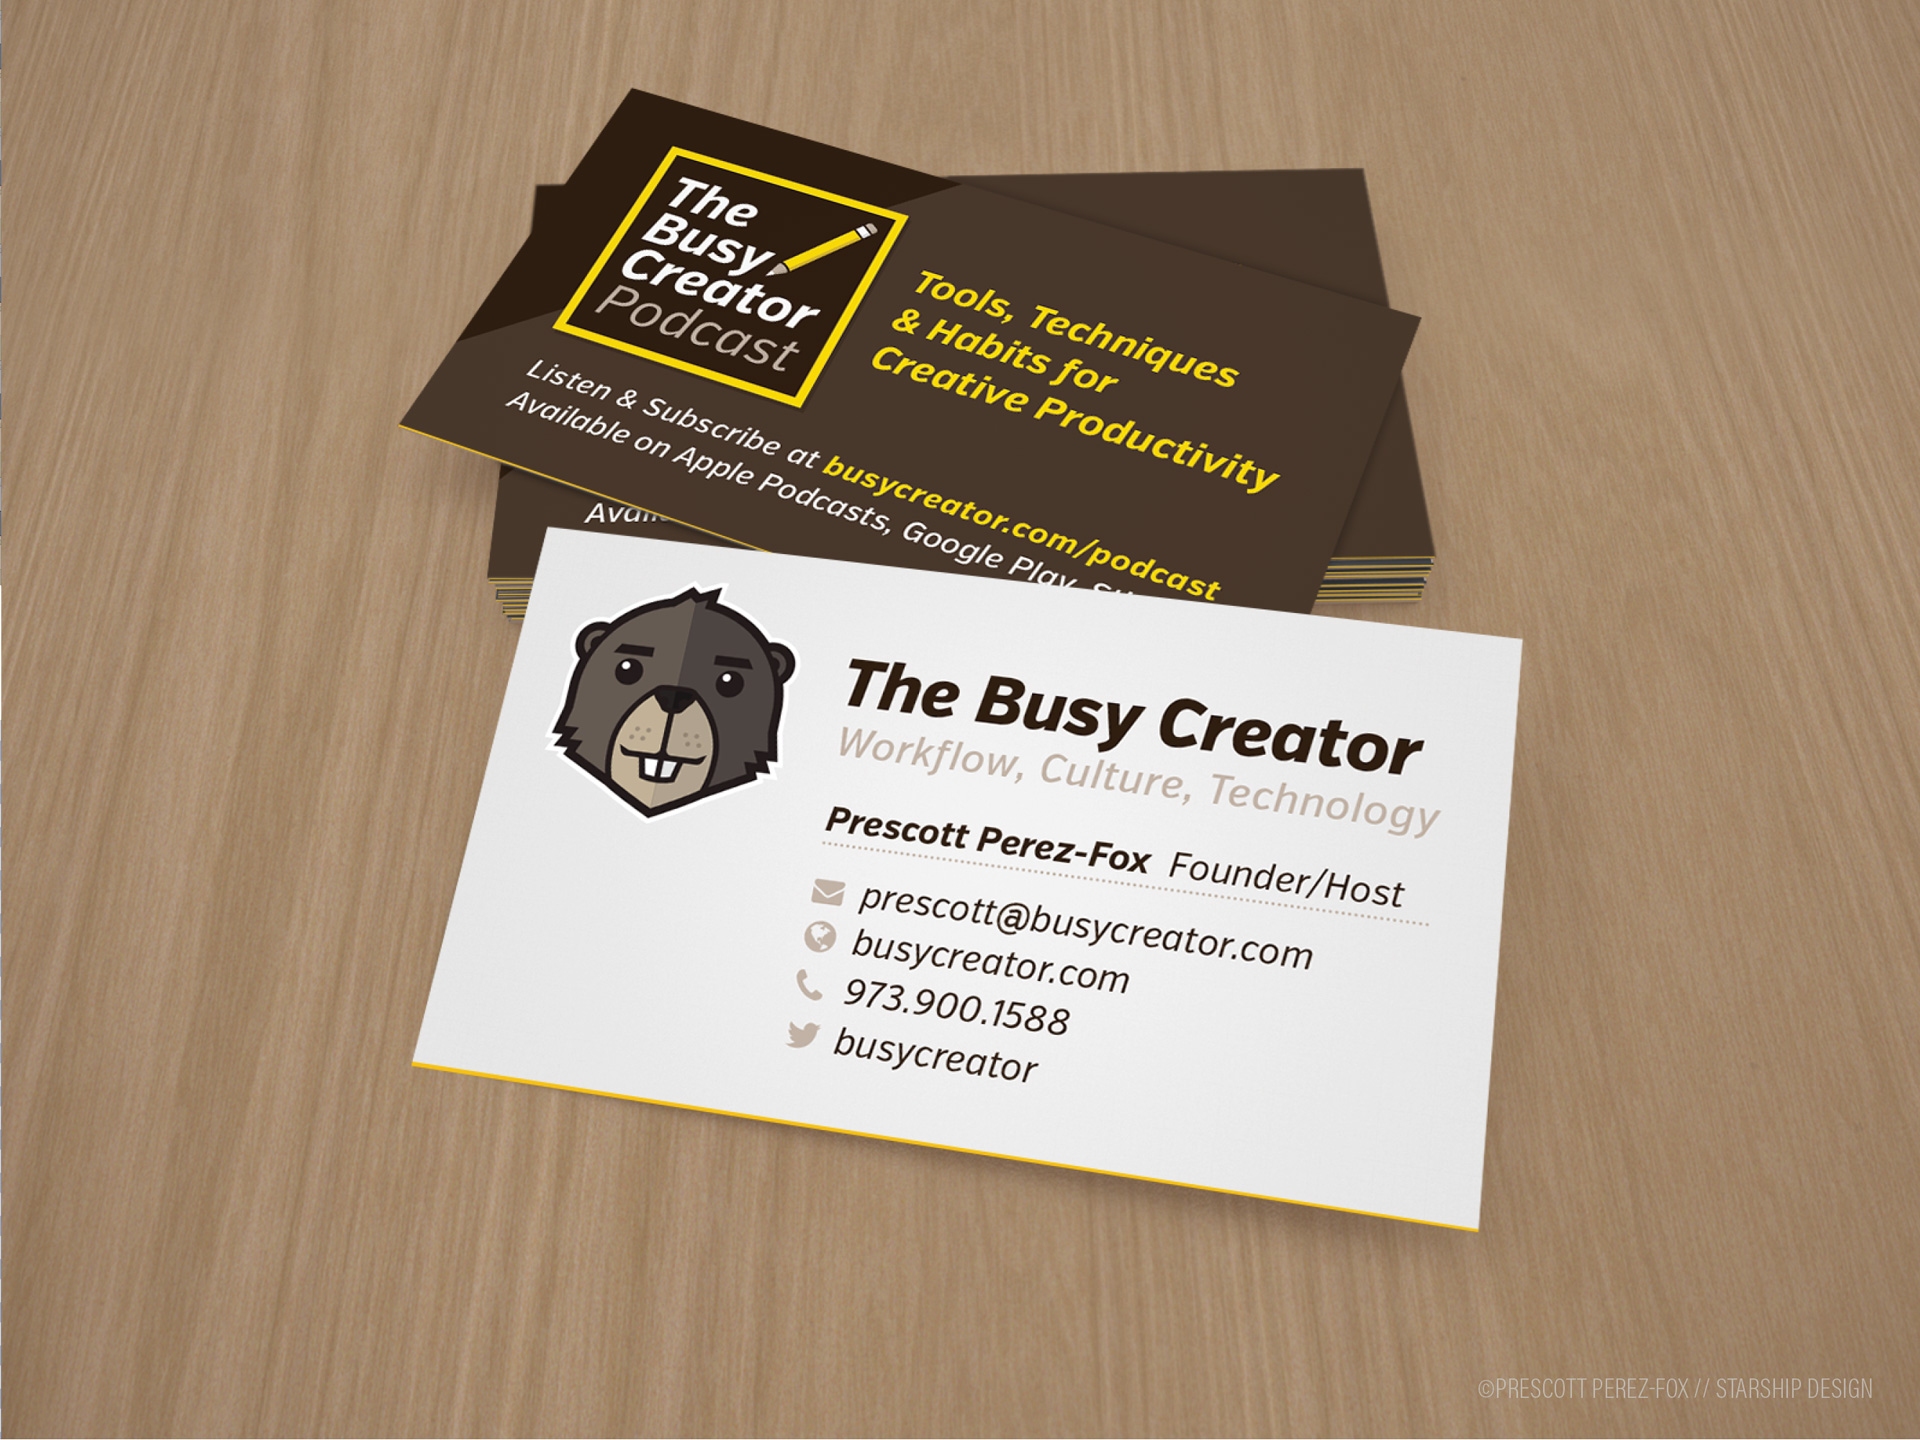 The Busy Creator business cards